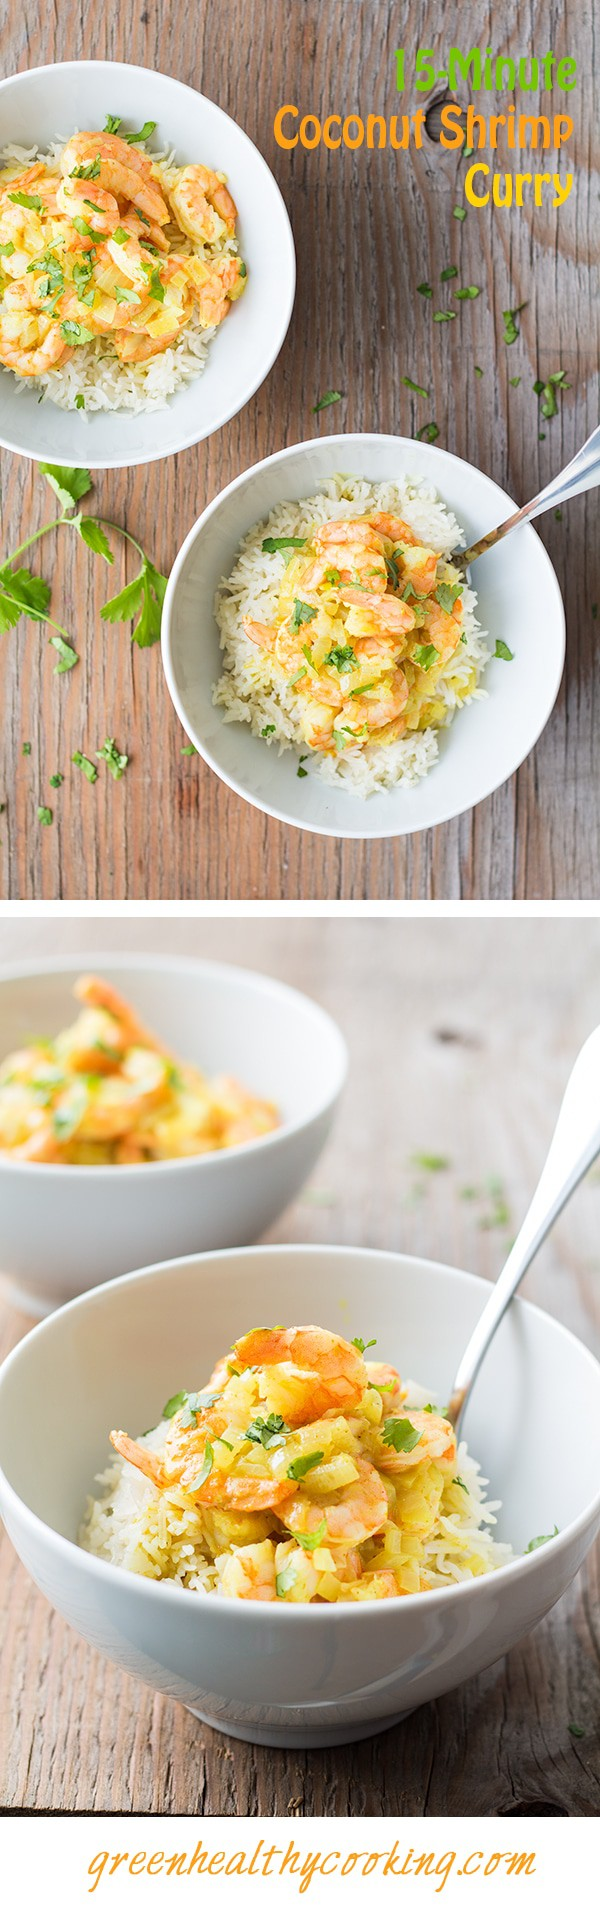 15-Minute Coconut Shrimp Curry recipe that competes with any fast ...